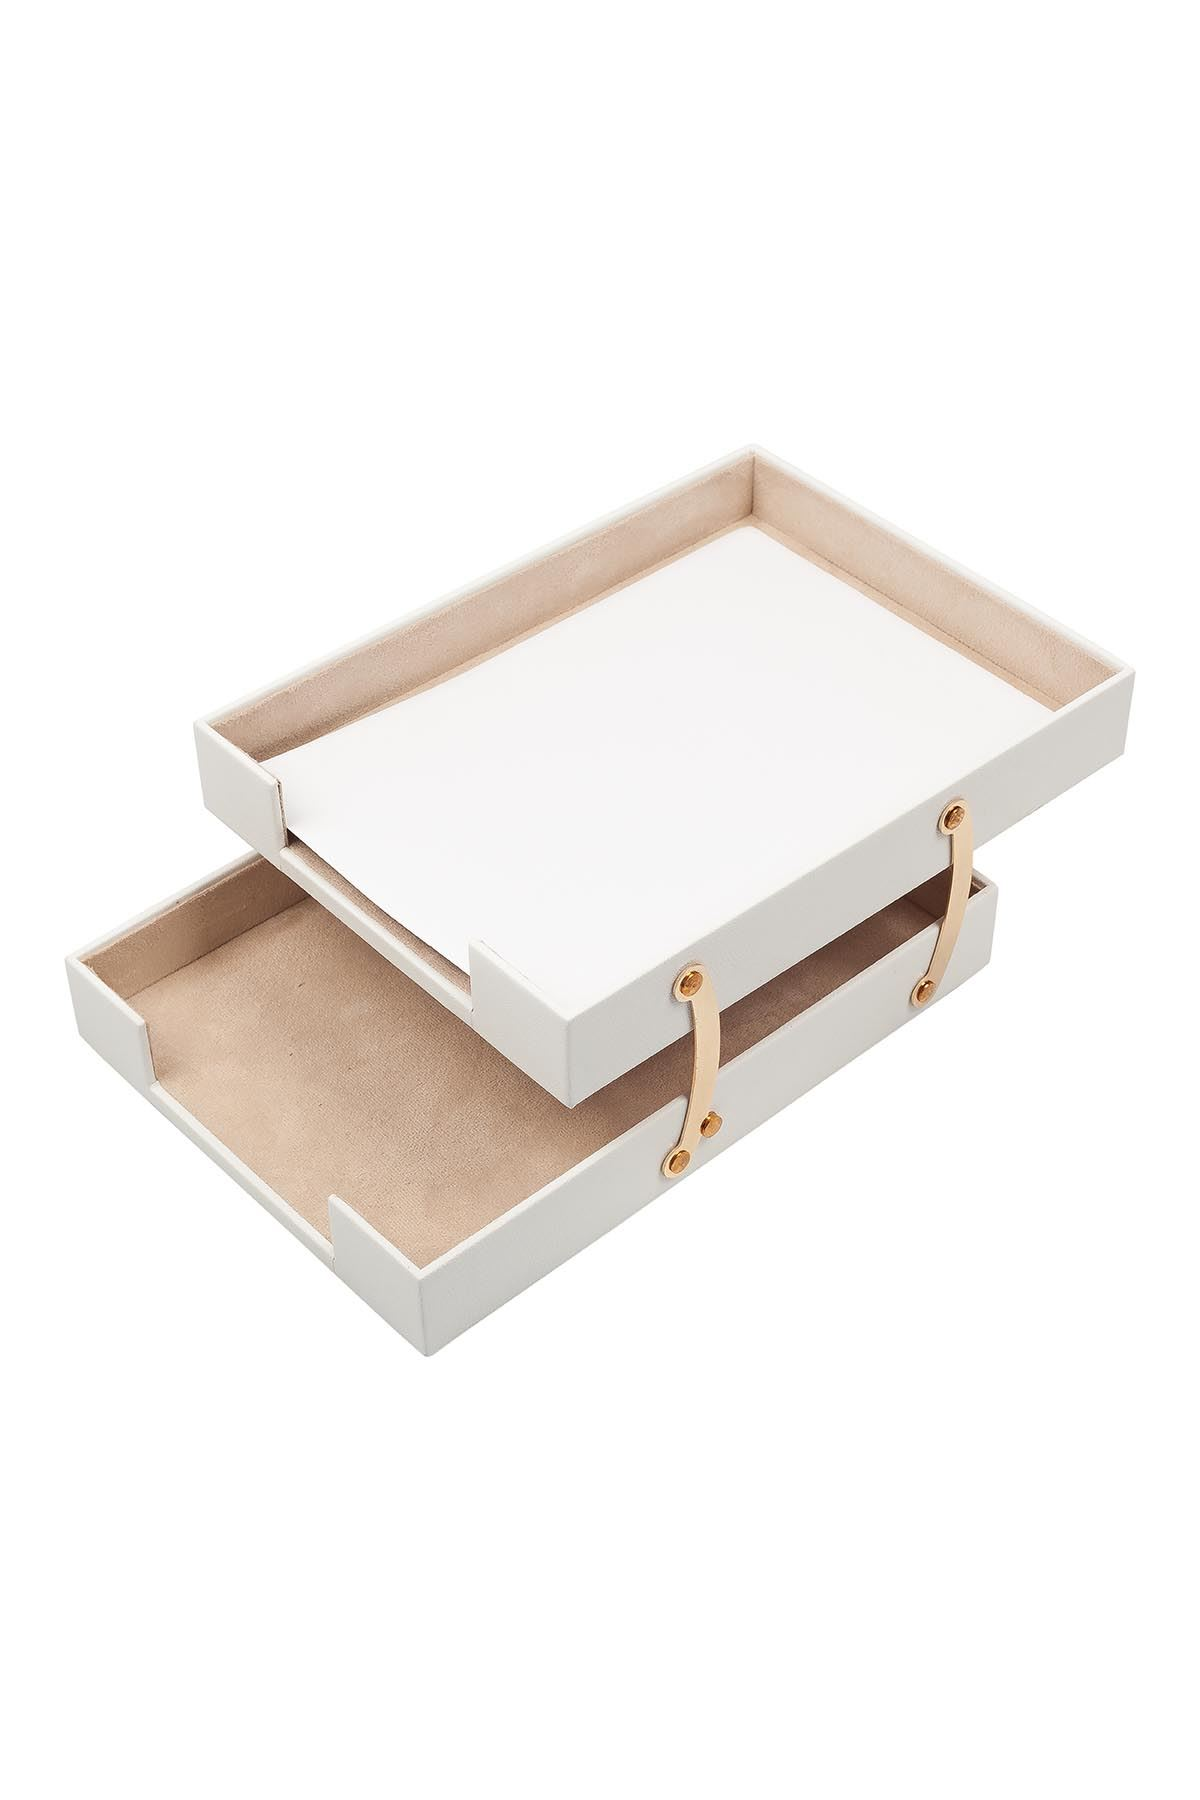 Double Document Tray White| Leather Document Organizer | Leather Foldable Tray | Leather Organizer | Double Document Shelves